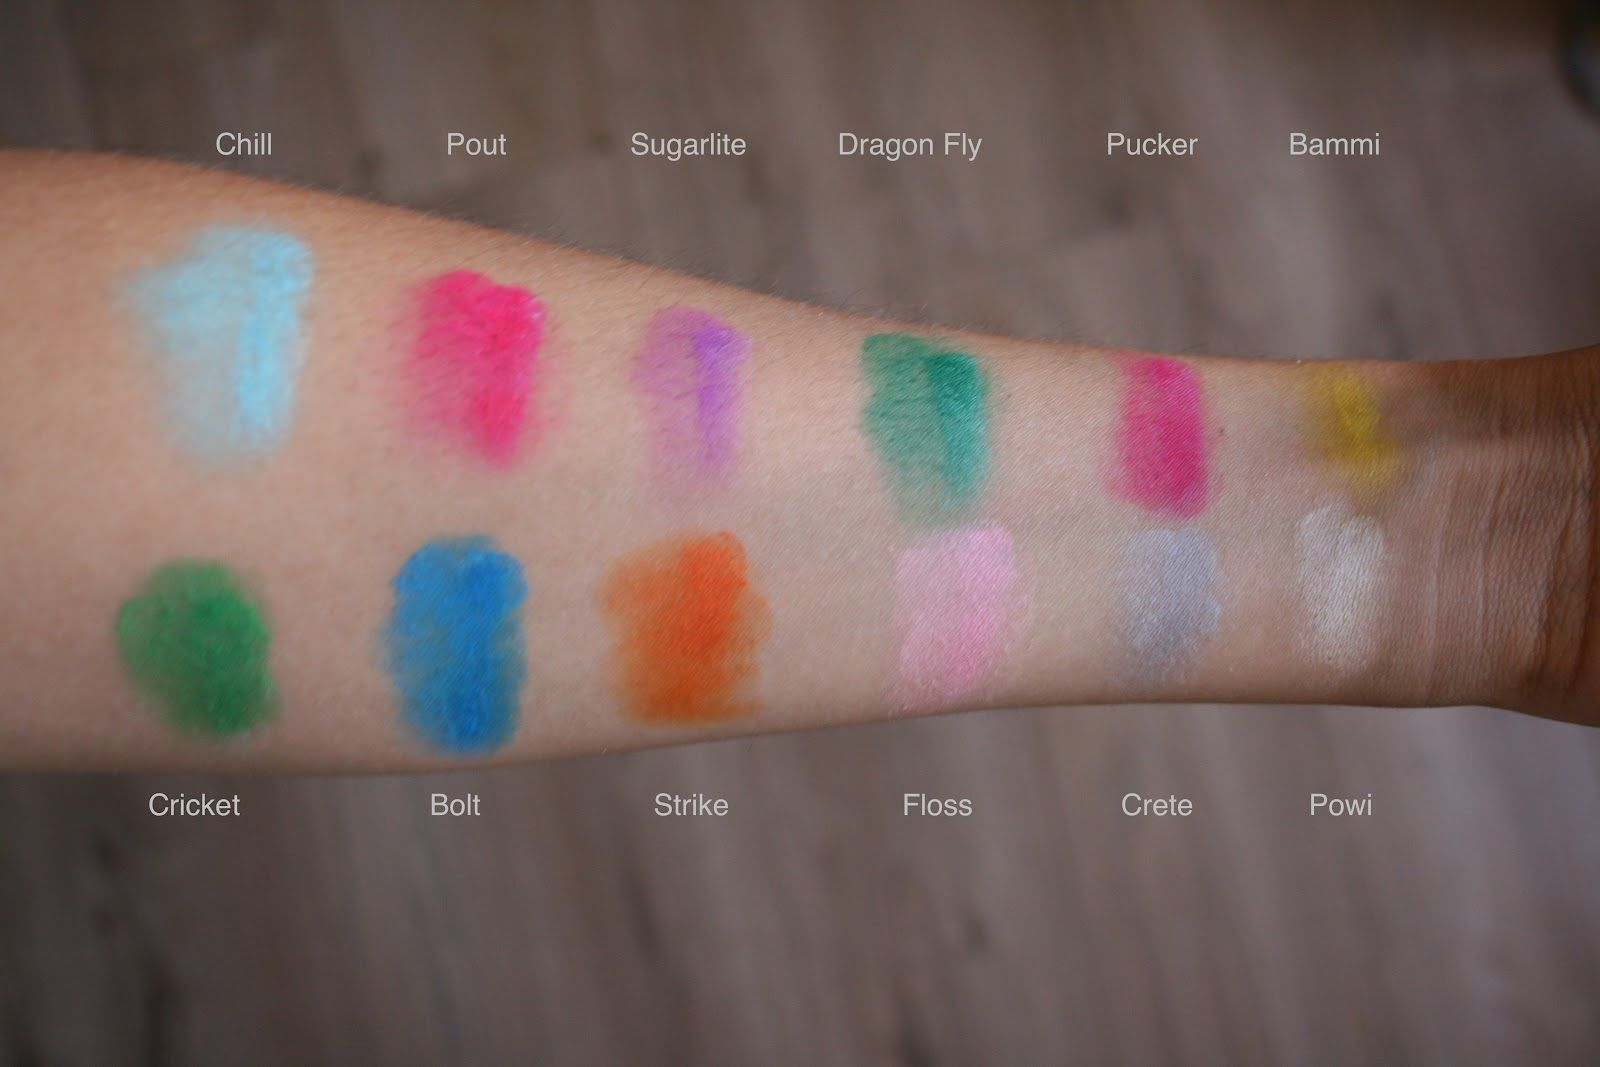 Bain De Bouche Vinaigre Sleekmakeup Swatch Ultra Mattes V1 Makeup Beauty